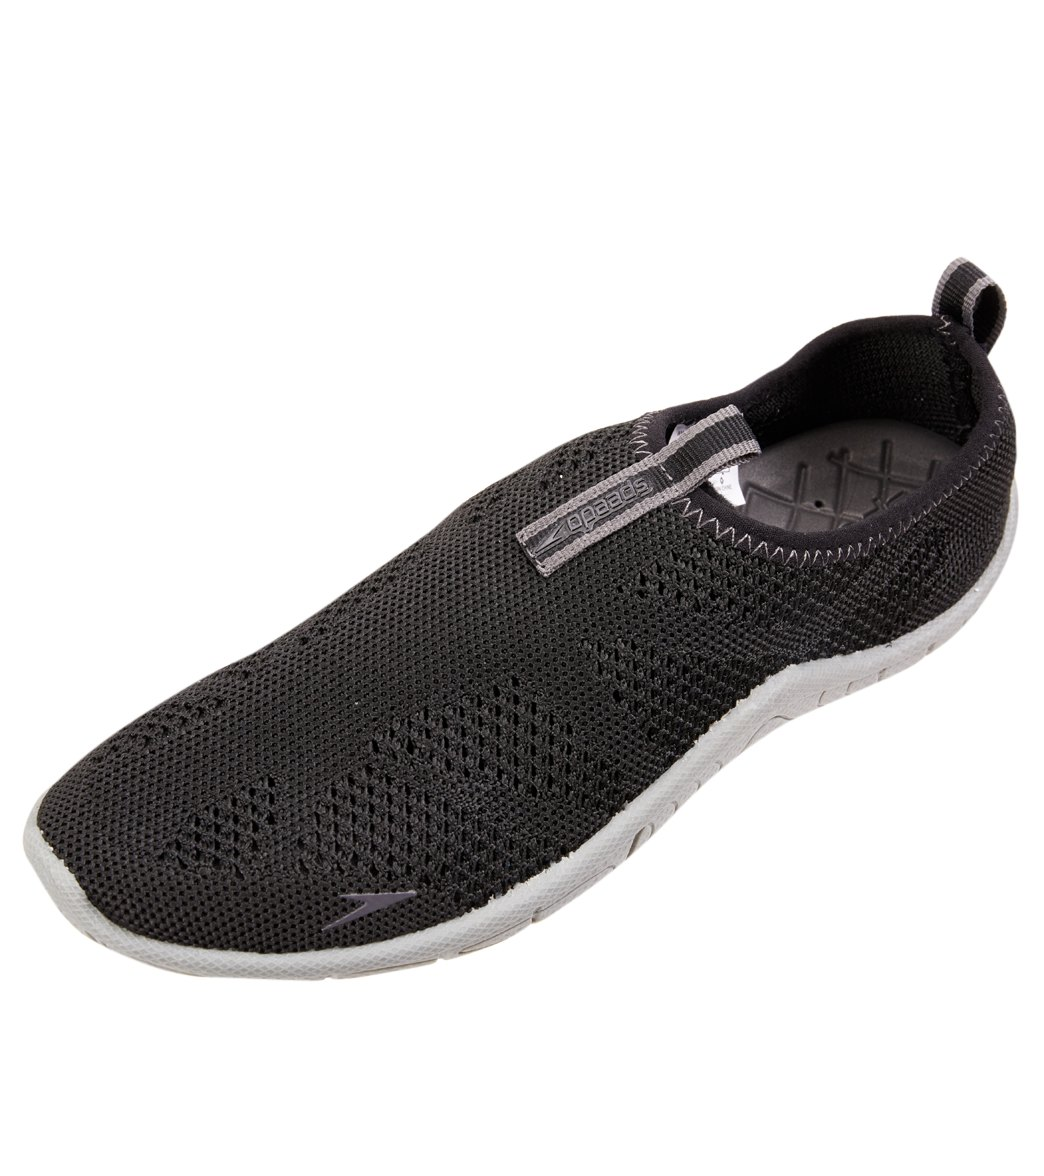 0b56306f2a9e Speedo Women s Surf Knit Water Shoe at SwimOutlet.com